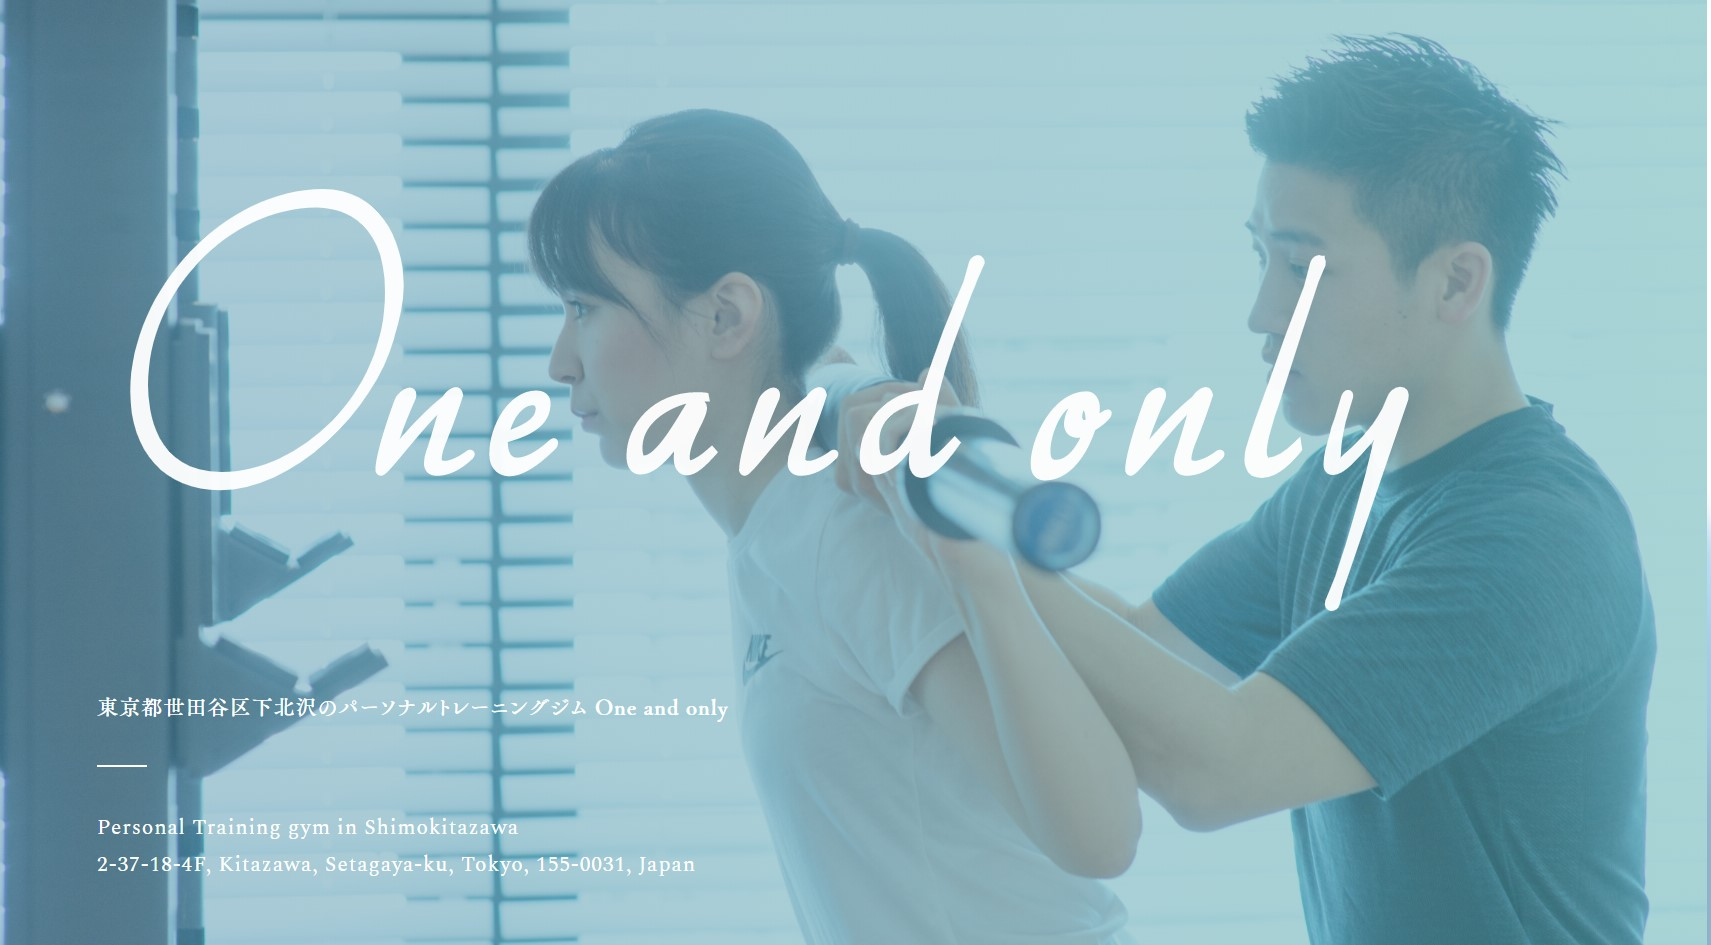 One and only-アイキャッチ